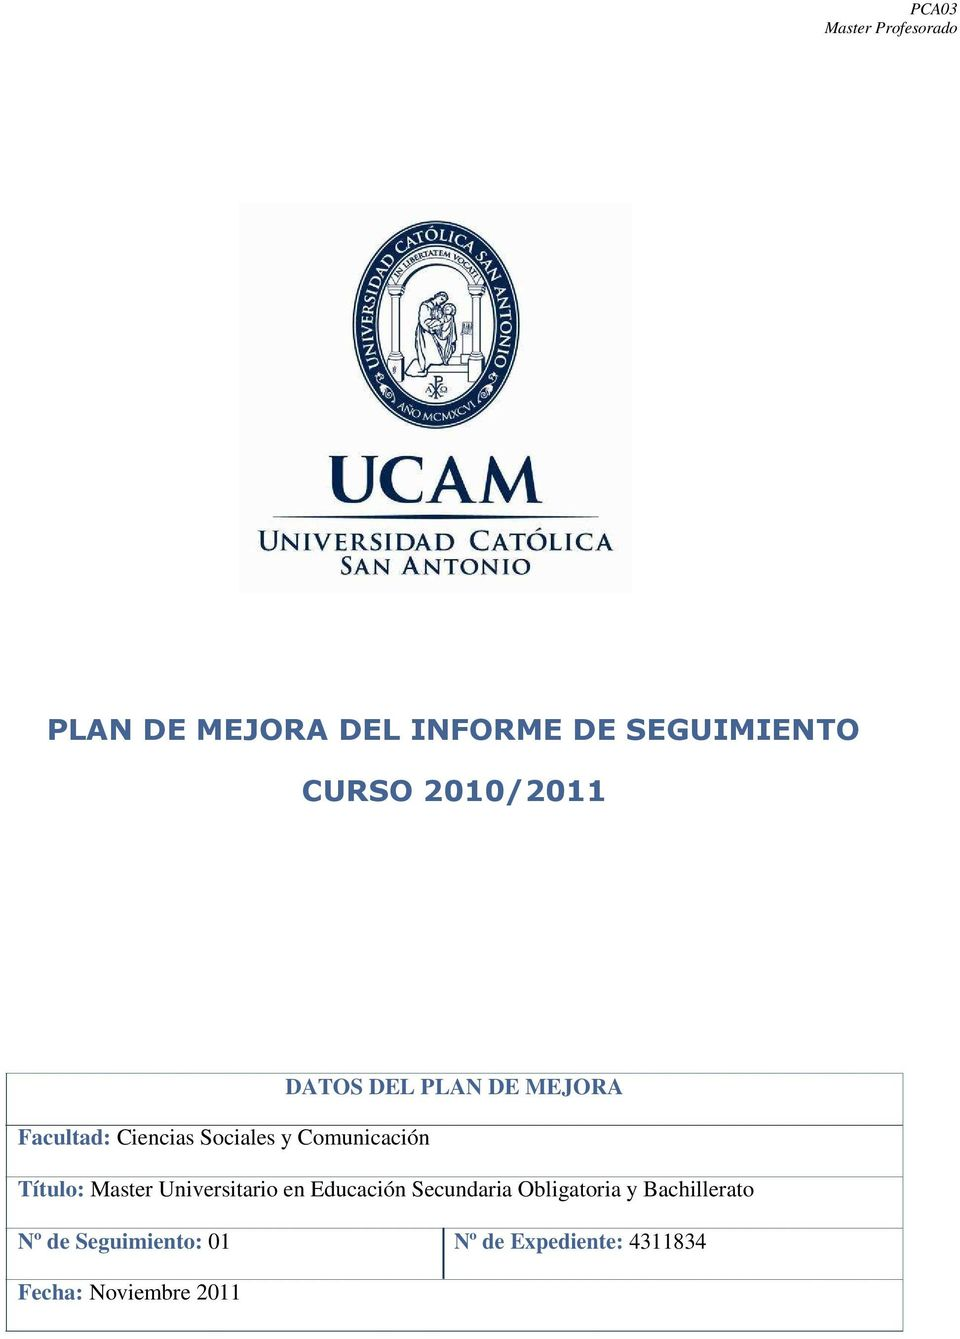 Master Universitario en Educación Secundaria Obligatoria y